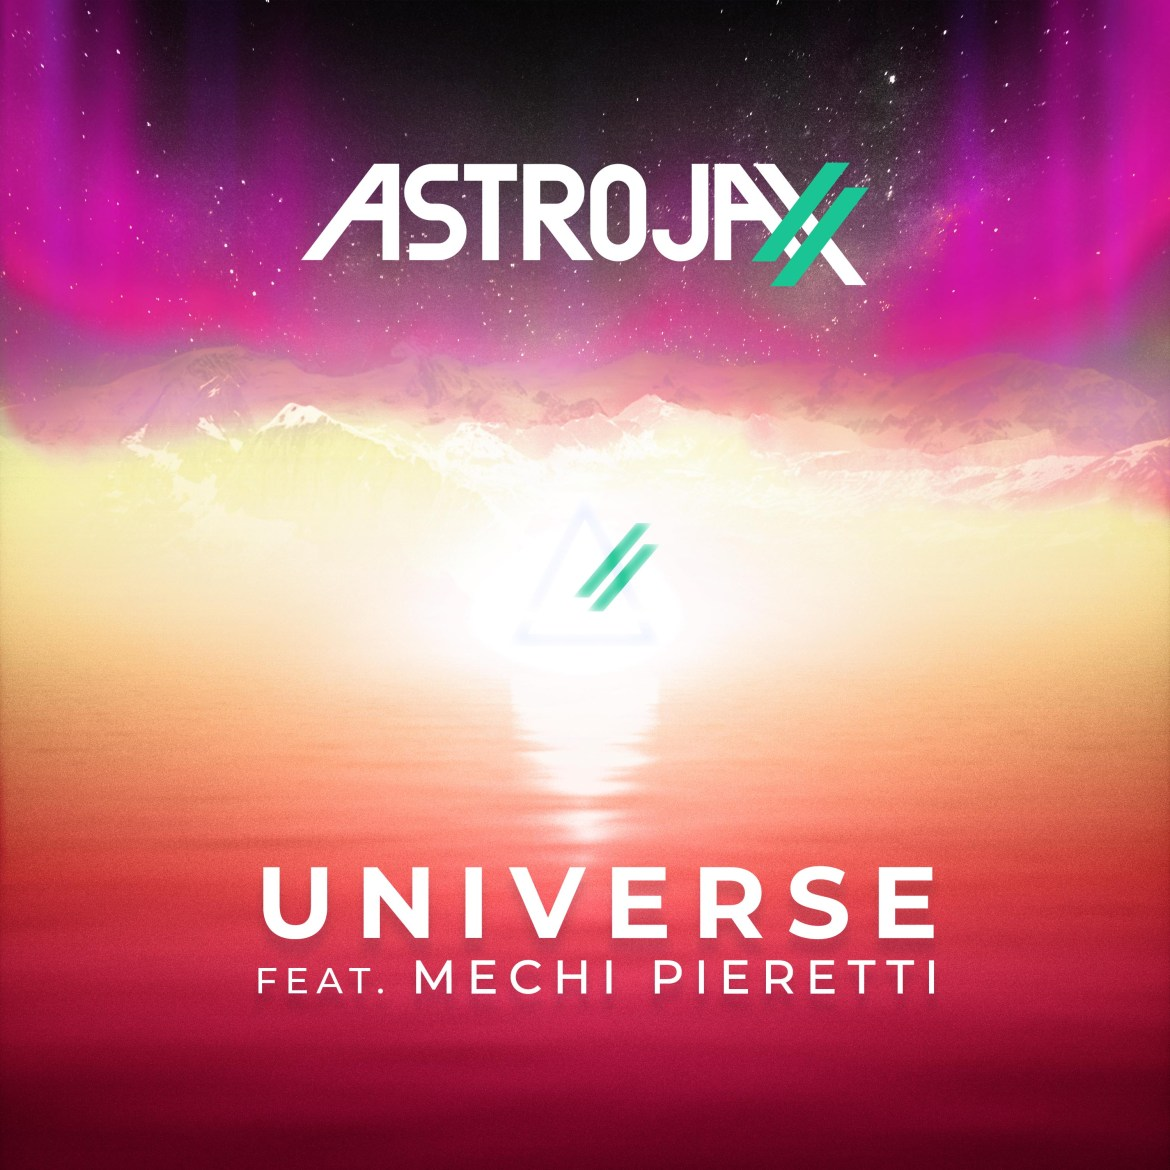 BURGEONING PHENOM ASTROJAXX TEAMS UP WITH ARGENTINIAN SPOTIFY SENSATION MECHI PIERETTI IN  'UNIVERSE'